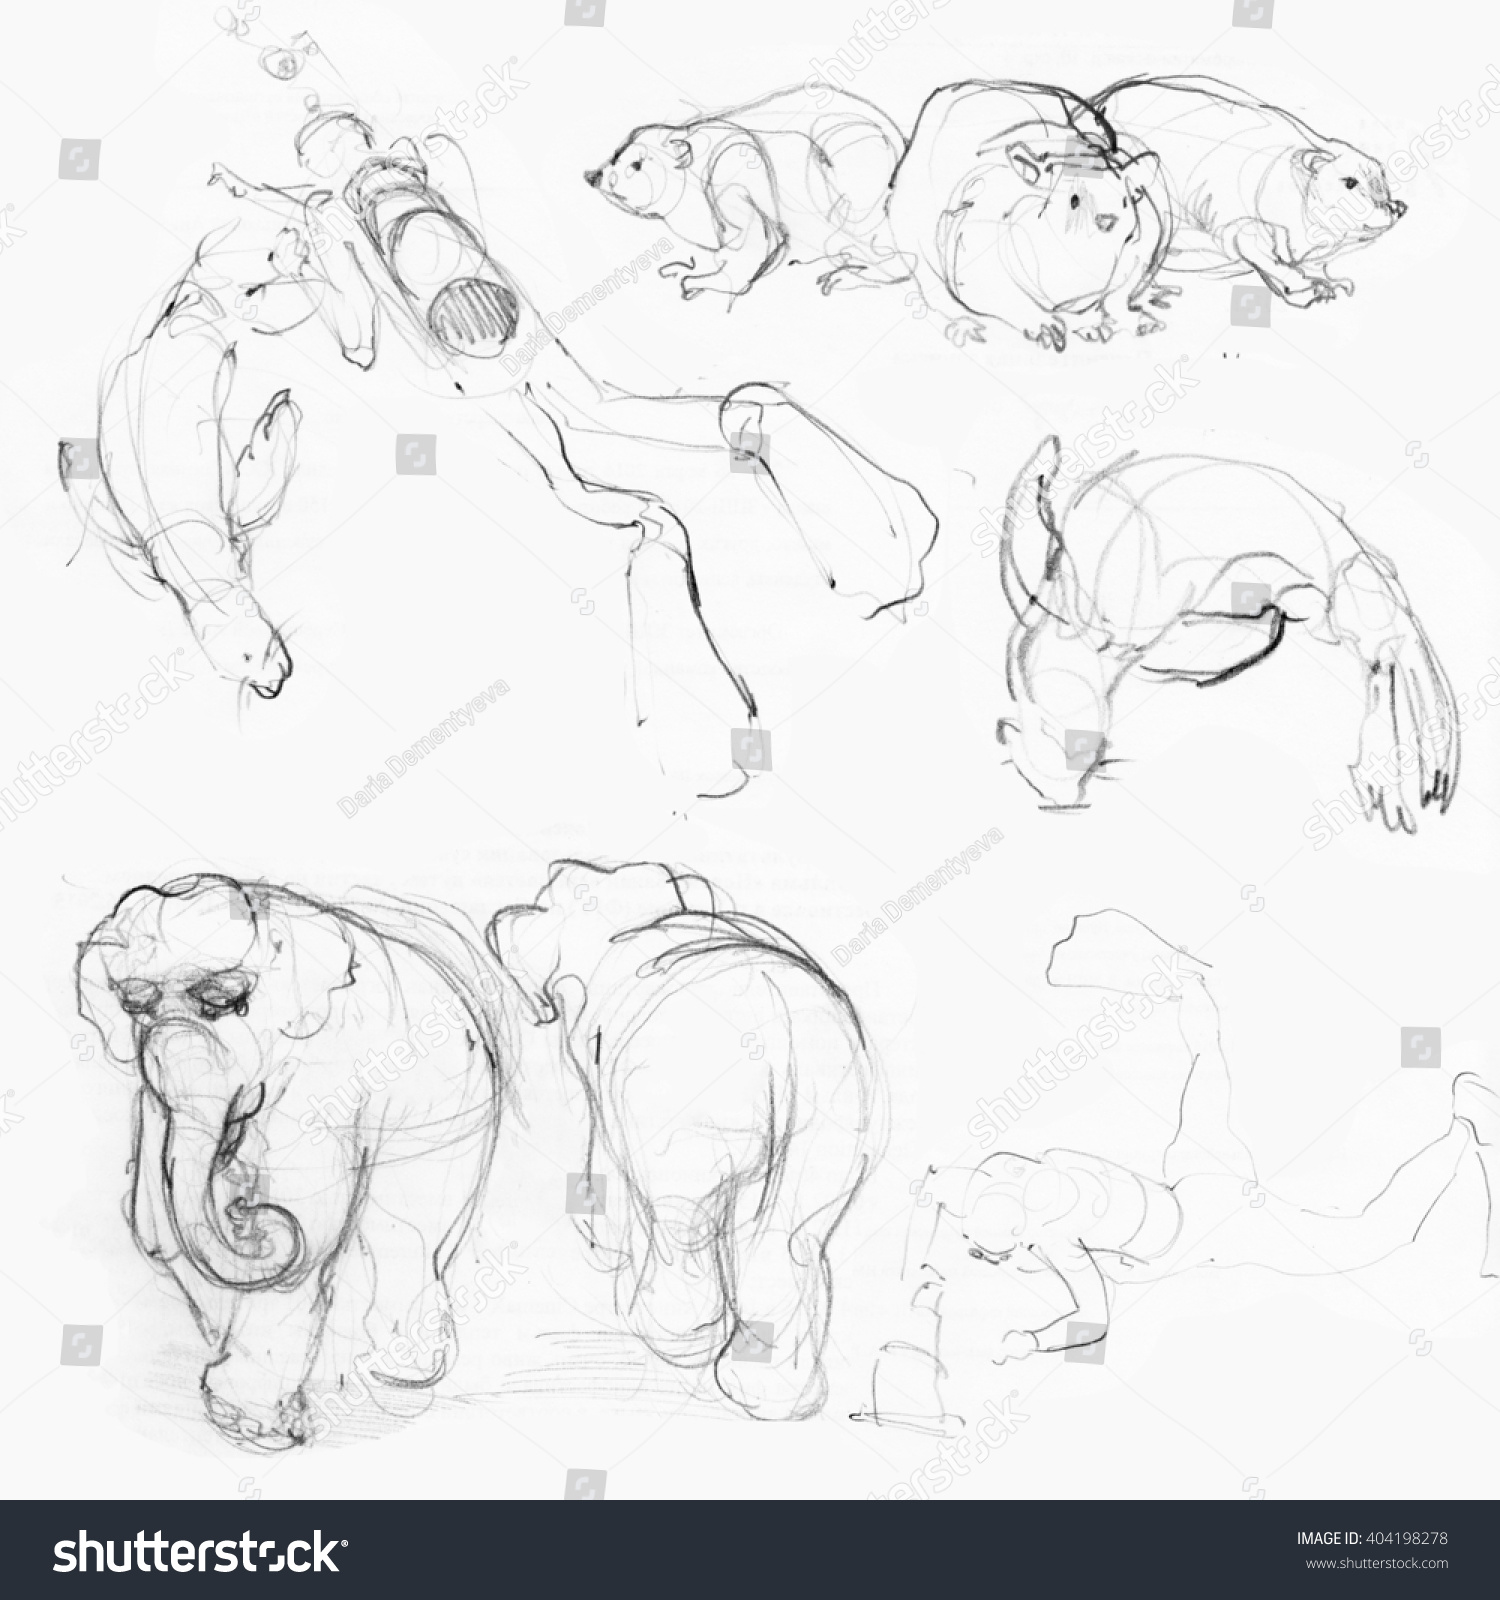 Animals in the zoo pencil sketches